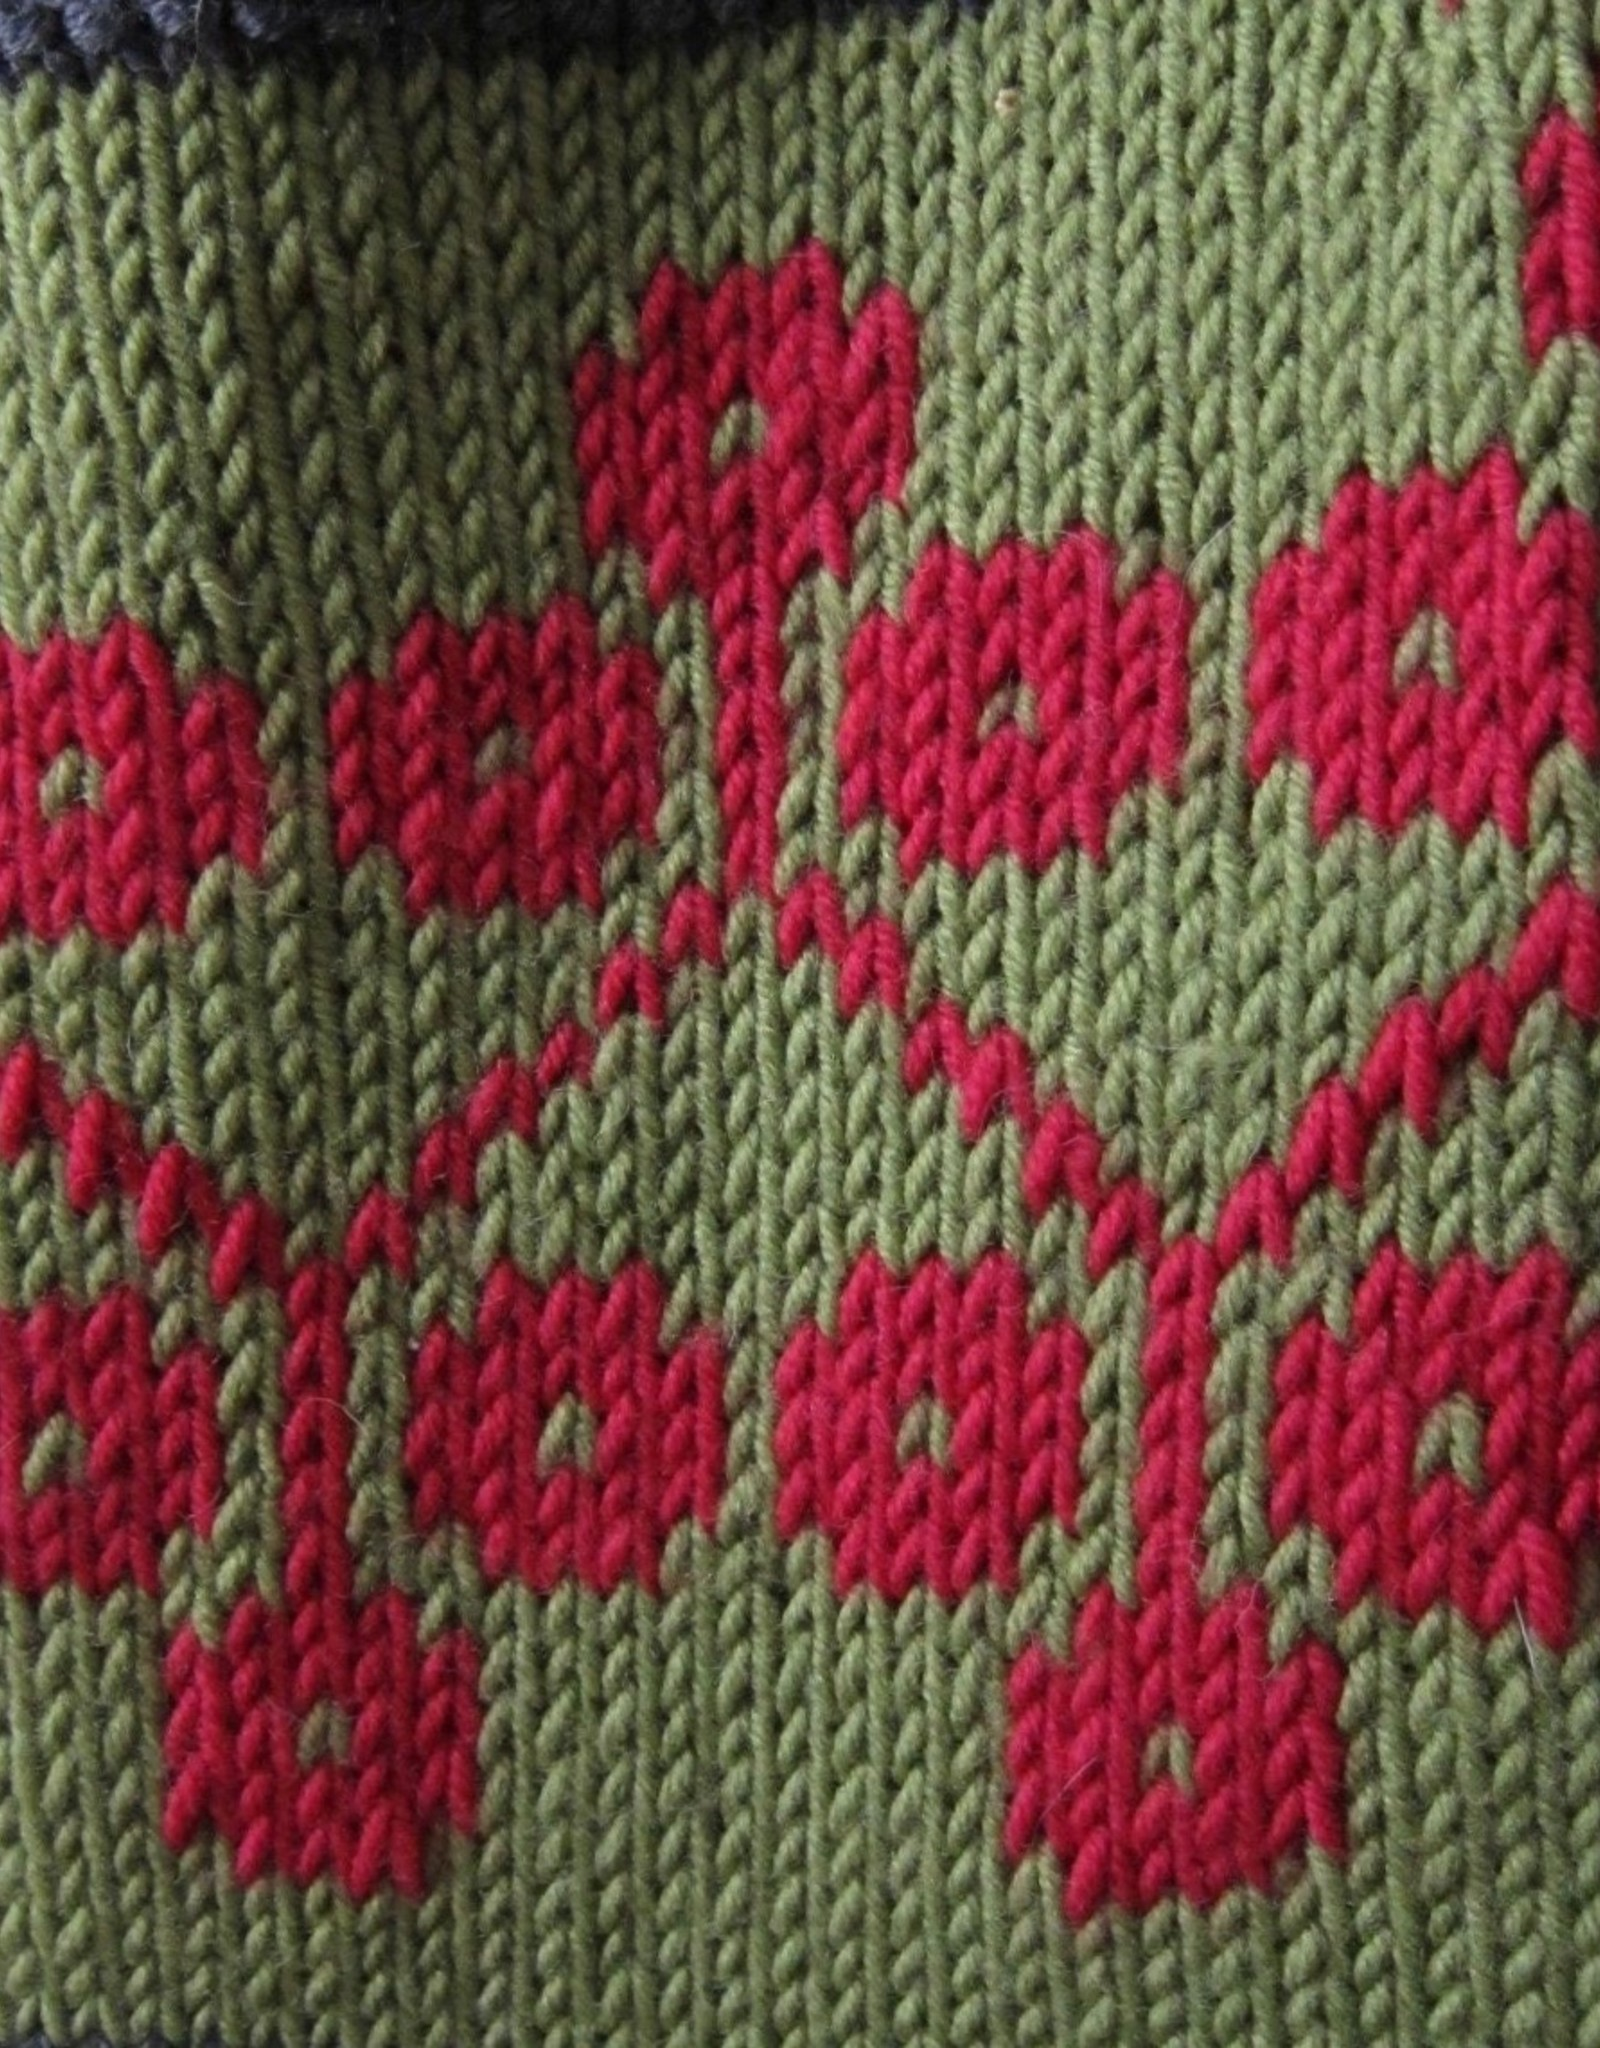 Fair Isle Holiday Stocking: SA Nov 7, 14 & 21, 12-2 pm